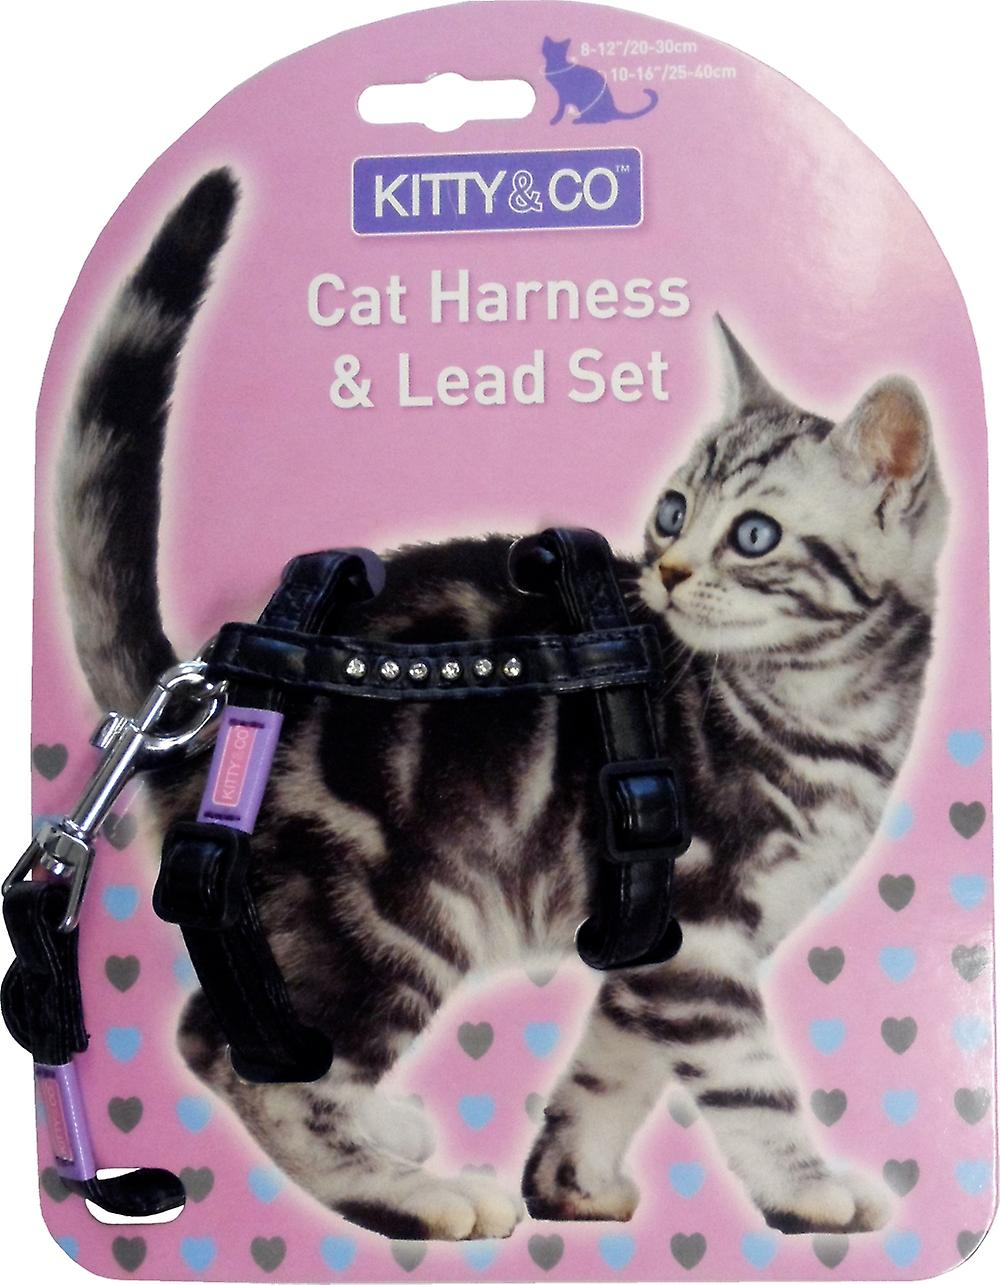 Kitten harness and lead set